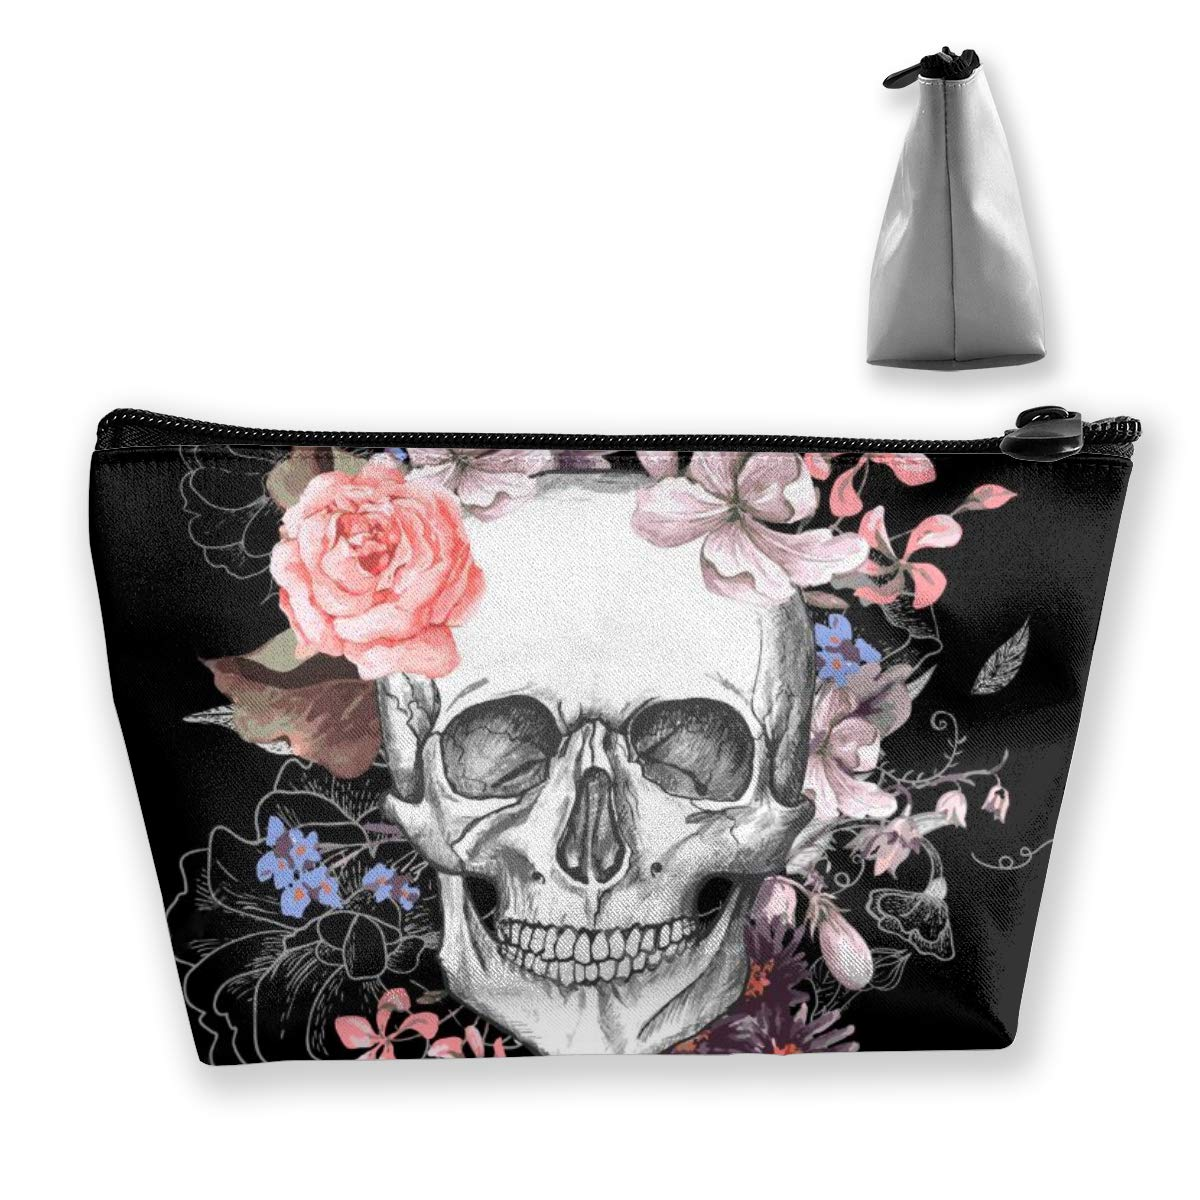 Skull And Flowers Day of The Dead Cosmetic Bag Portable Travel Makeup Toiletry Pouch Brush Accessories Organizer Storage Hand-held Coin Purse Pencil Cases with Zipper for Men Women